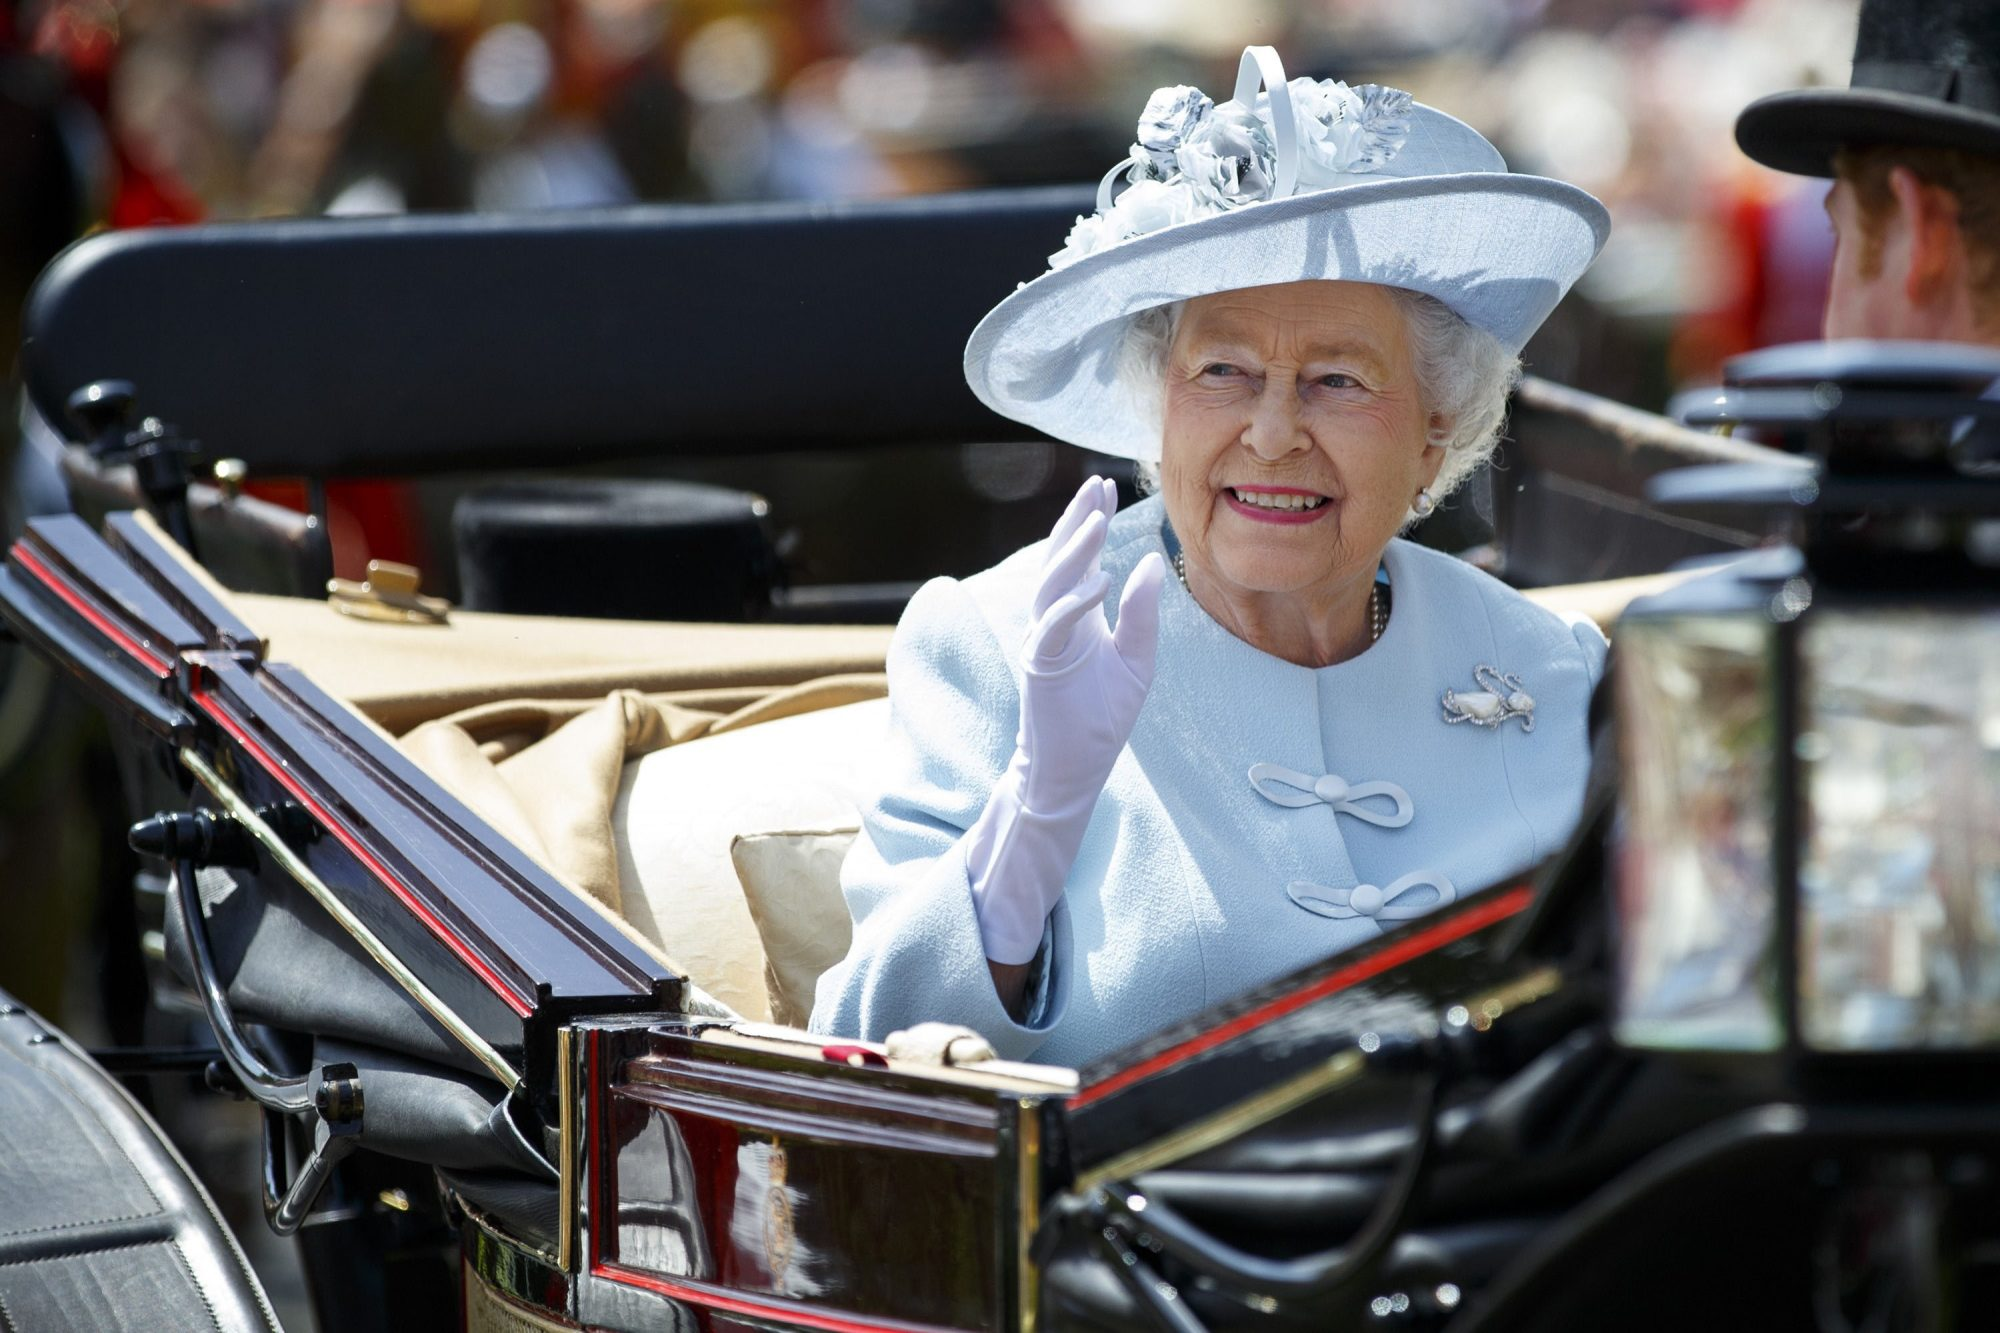 Queen Elizabeth riding in a Coach Trolley